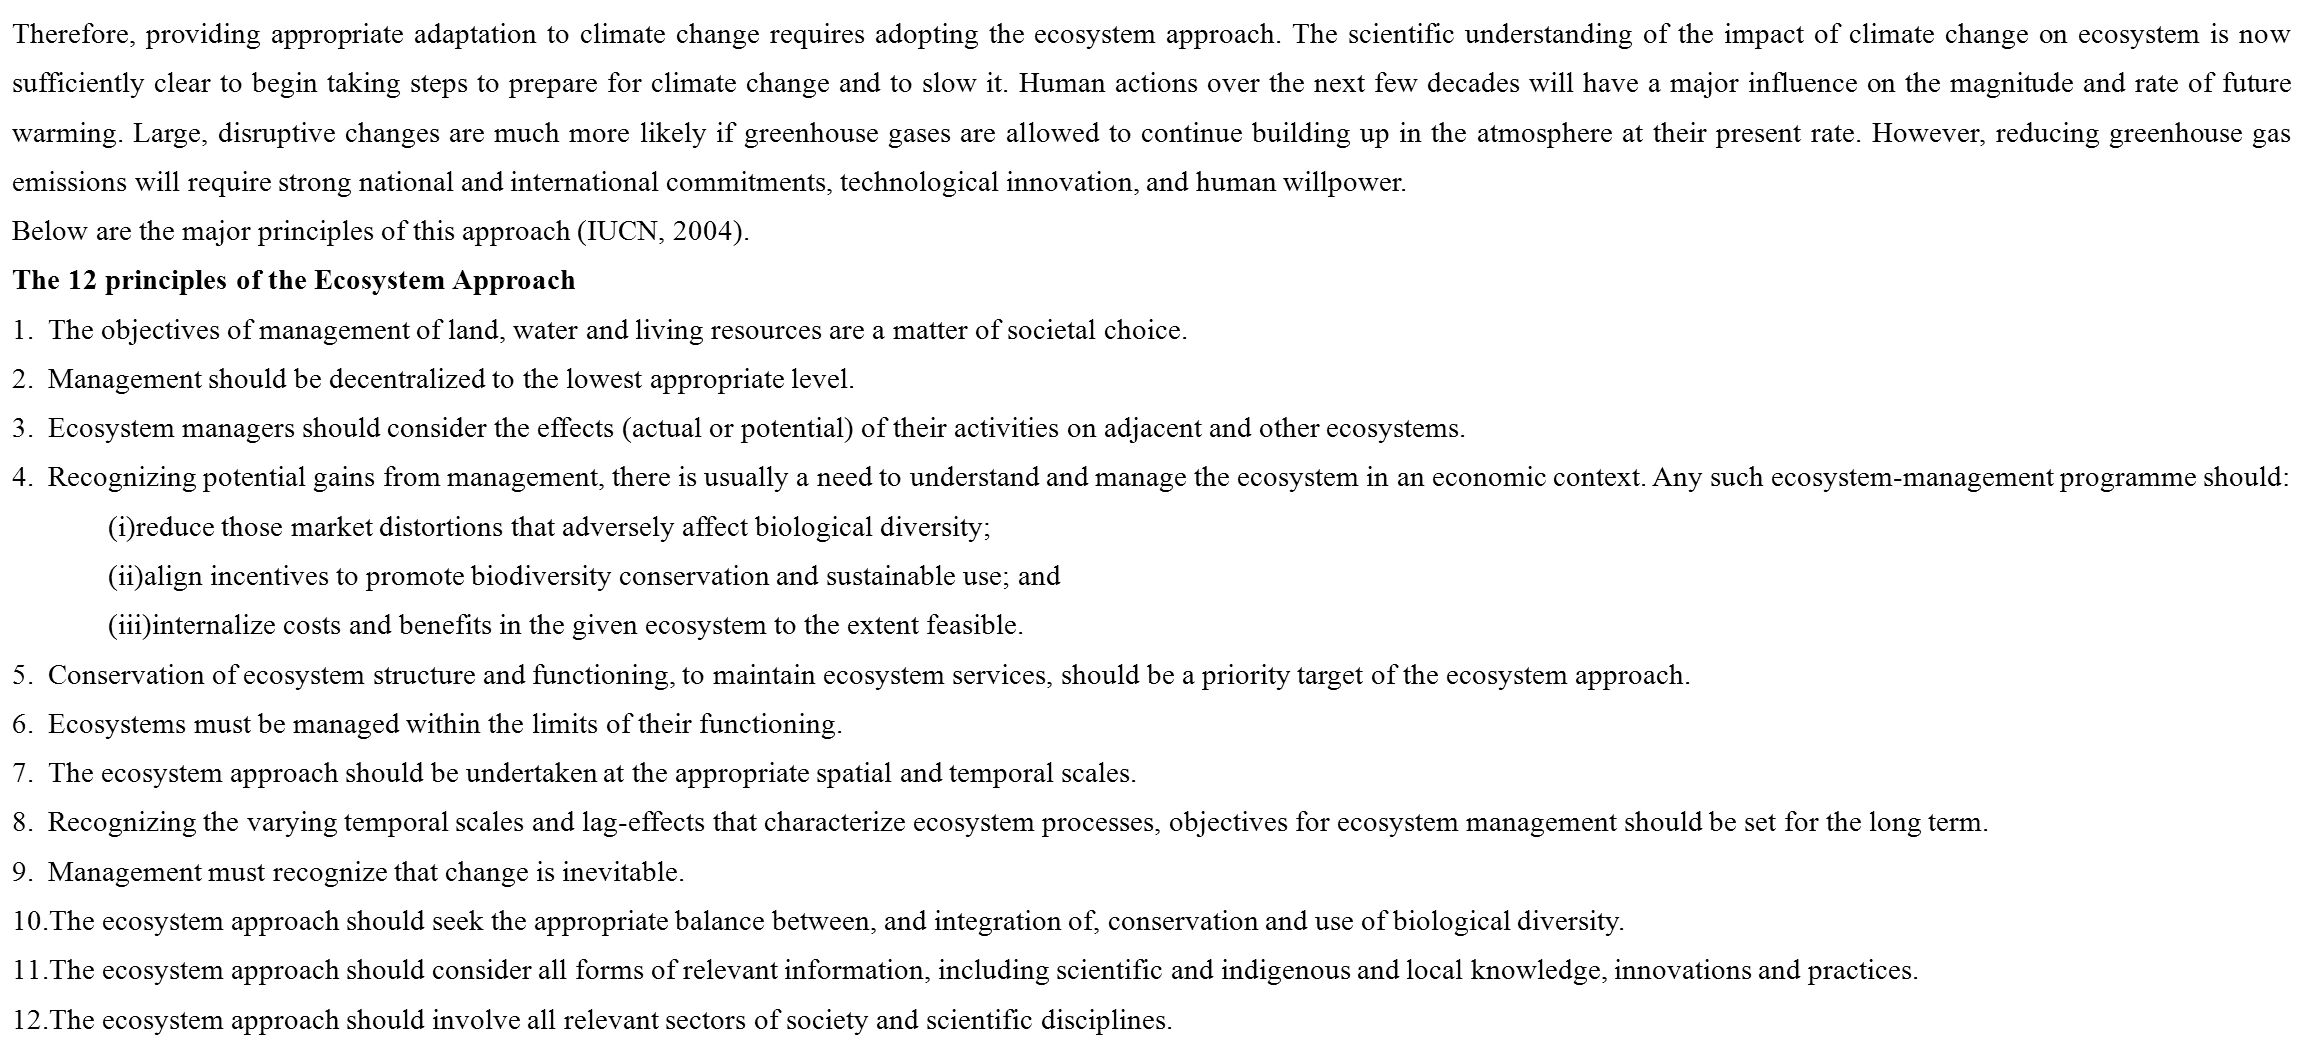 Therefore, providing appropriate adaptation to climate change requires adopting the ecosystem approach. The scientific understanding of the impact of climate change on ecosystem is now sufficiently clear to begin taking steps to prepare for climate change and to slow it. Human actions over the next few decades will have a major influence on the magnitude and rate of future warming. Large, disruptive changes are much more likely if greenhouse gases are allowed to continue building up in the atmosphere at their present rate. However, reducing greenhouse gas emissions will require strong national and international commitments, technological innovation, and human willpower.